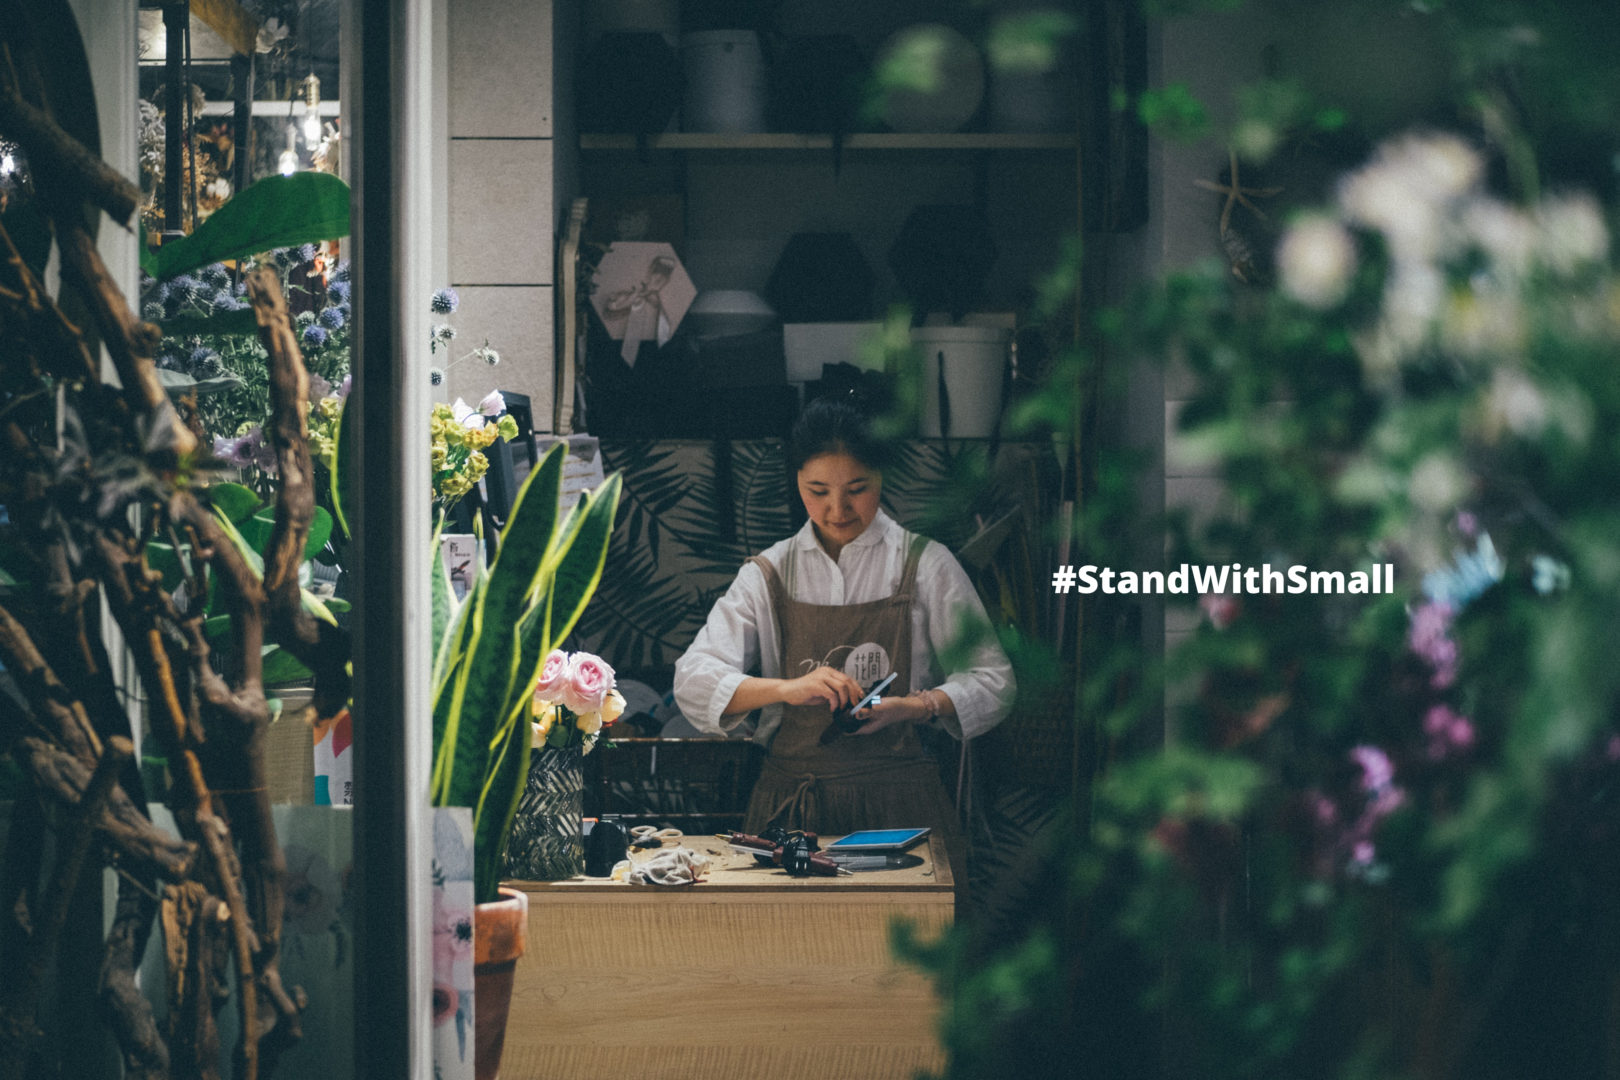 Social media campaigns for charities - #StandWithSmall